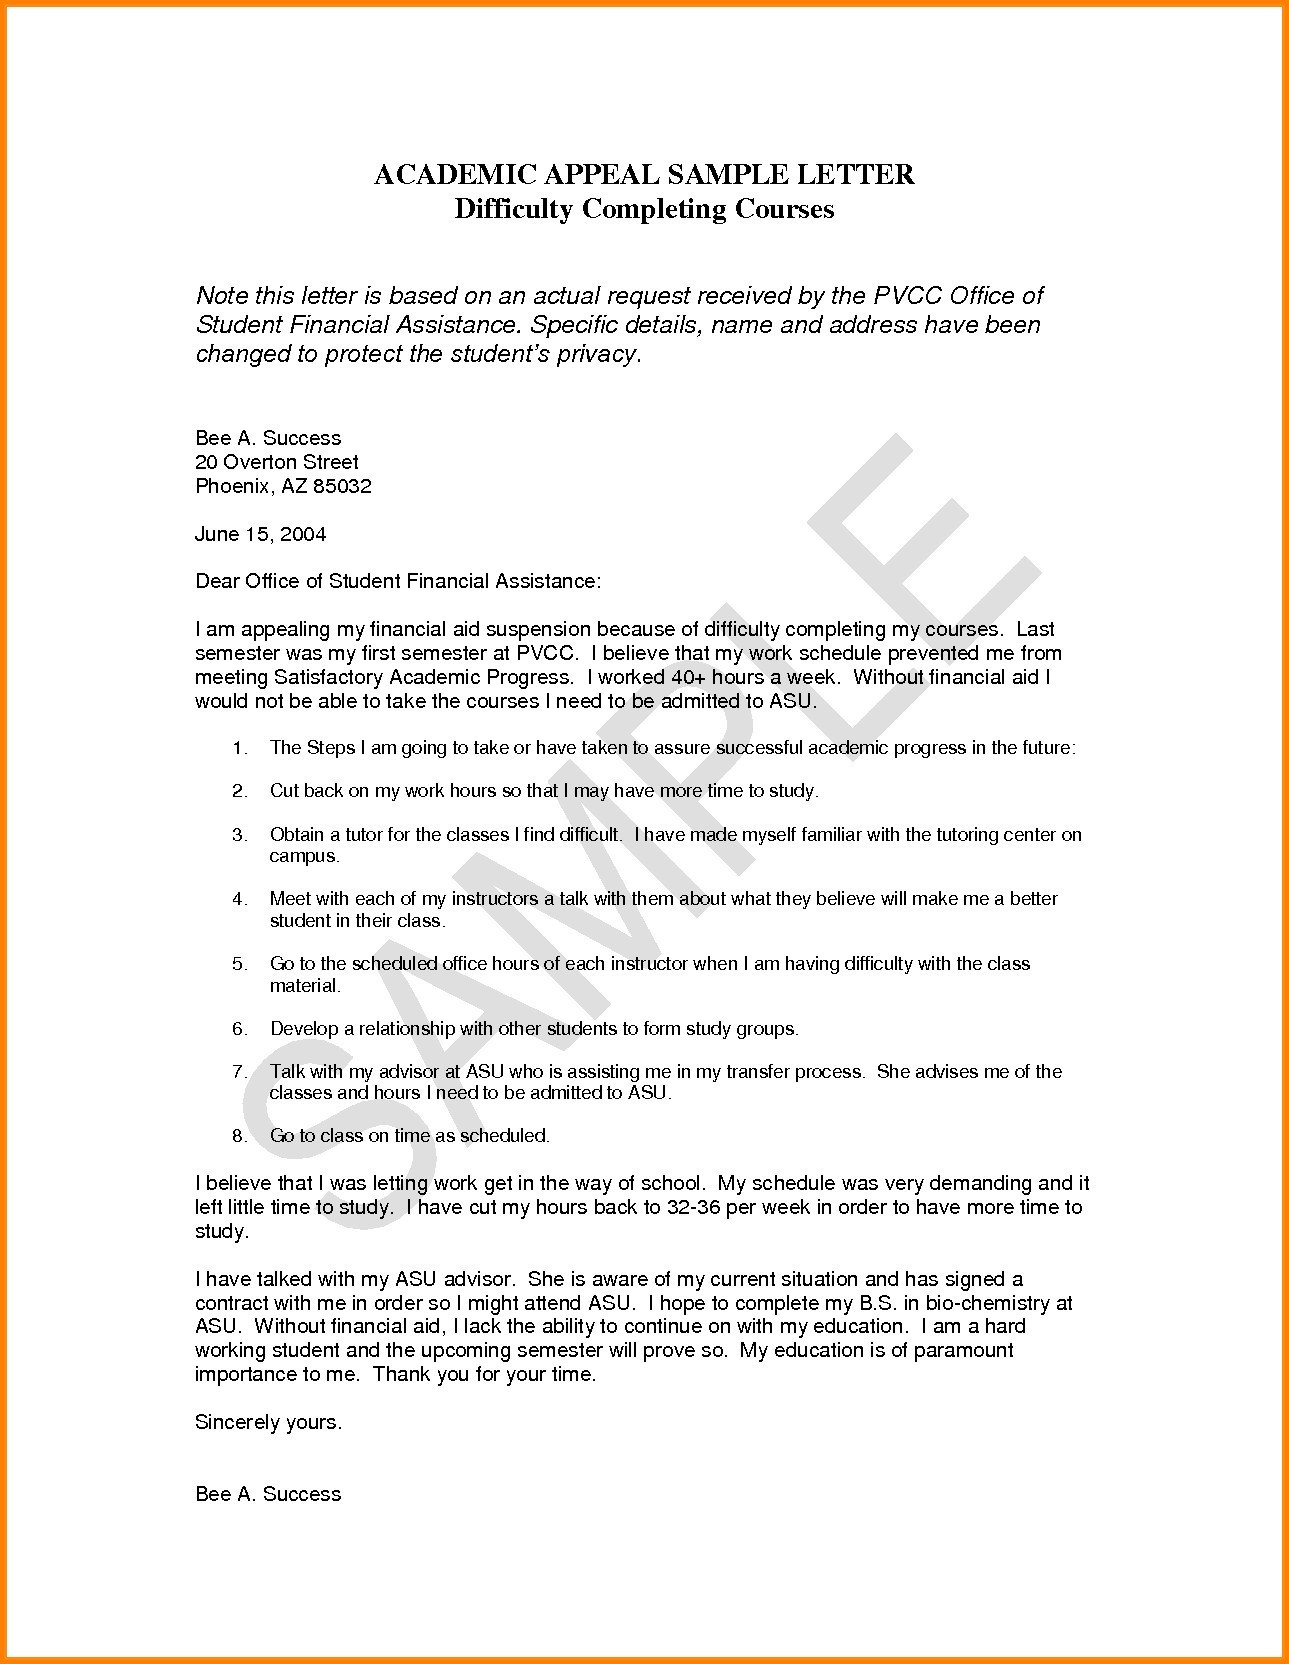 Probation Termination Letter Template - Academic Probation Letter Template Personalinjurylovete